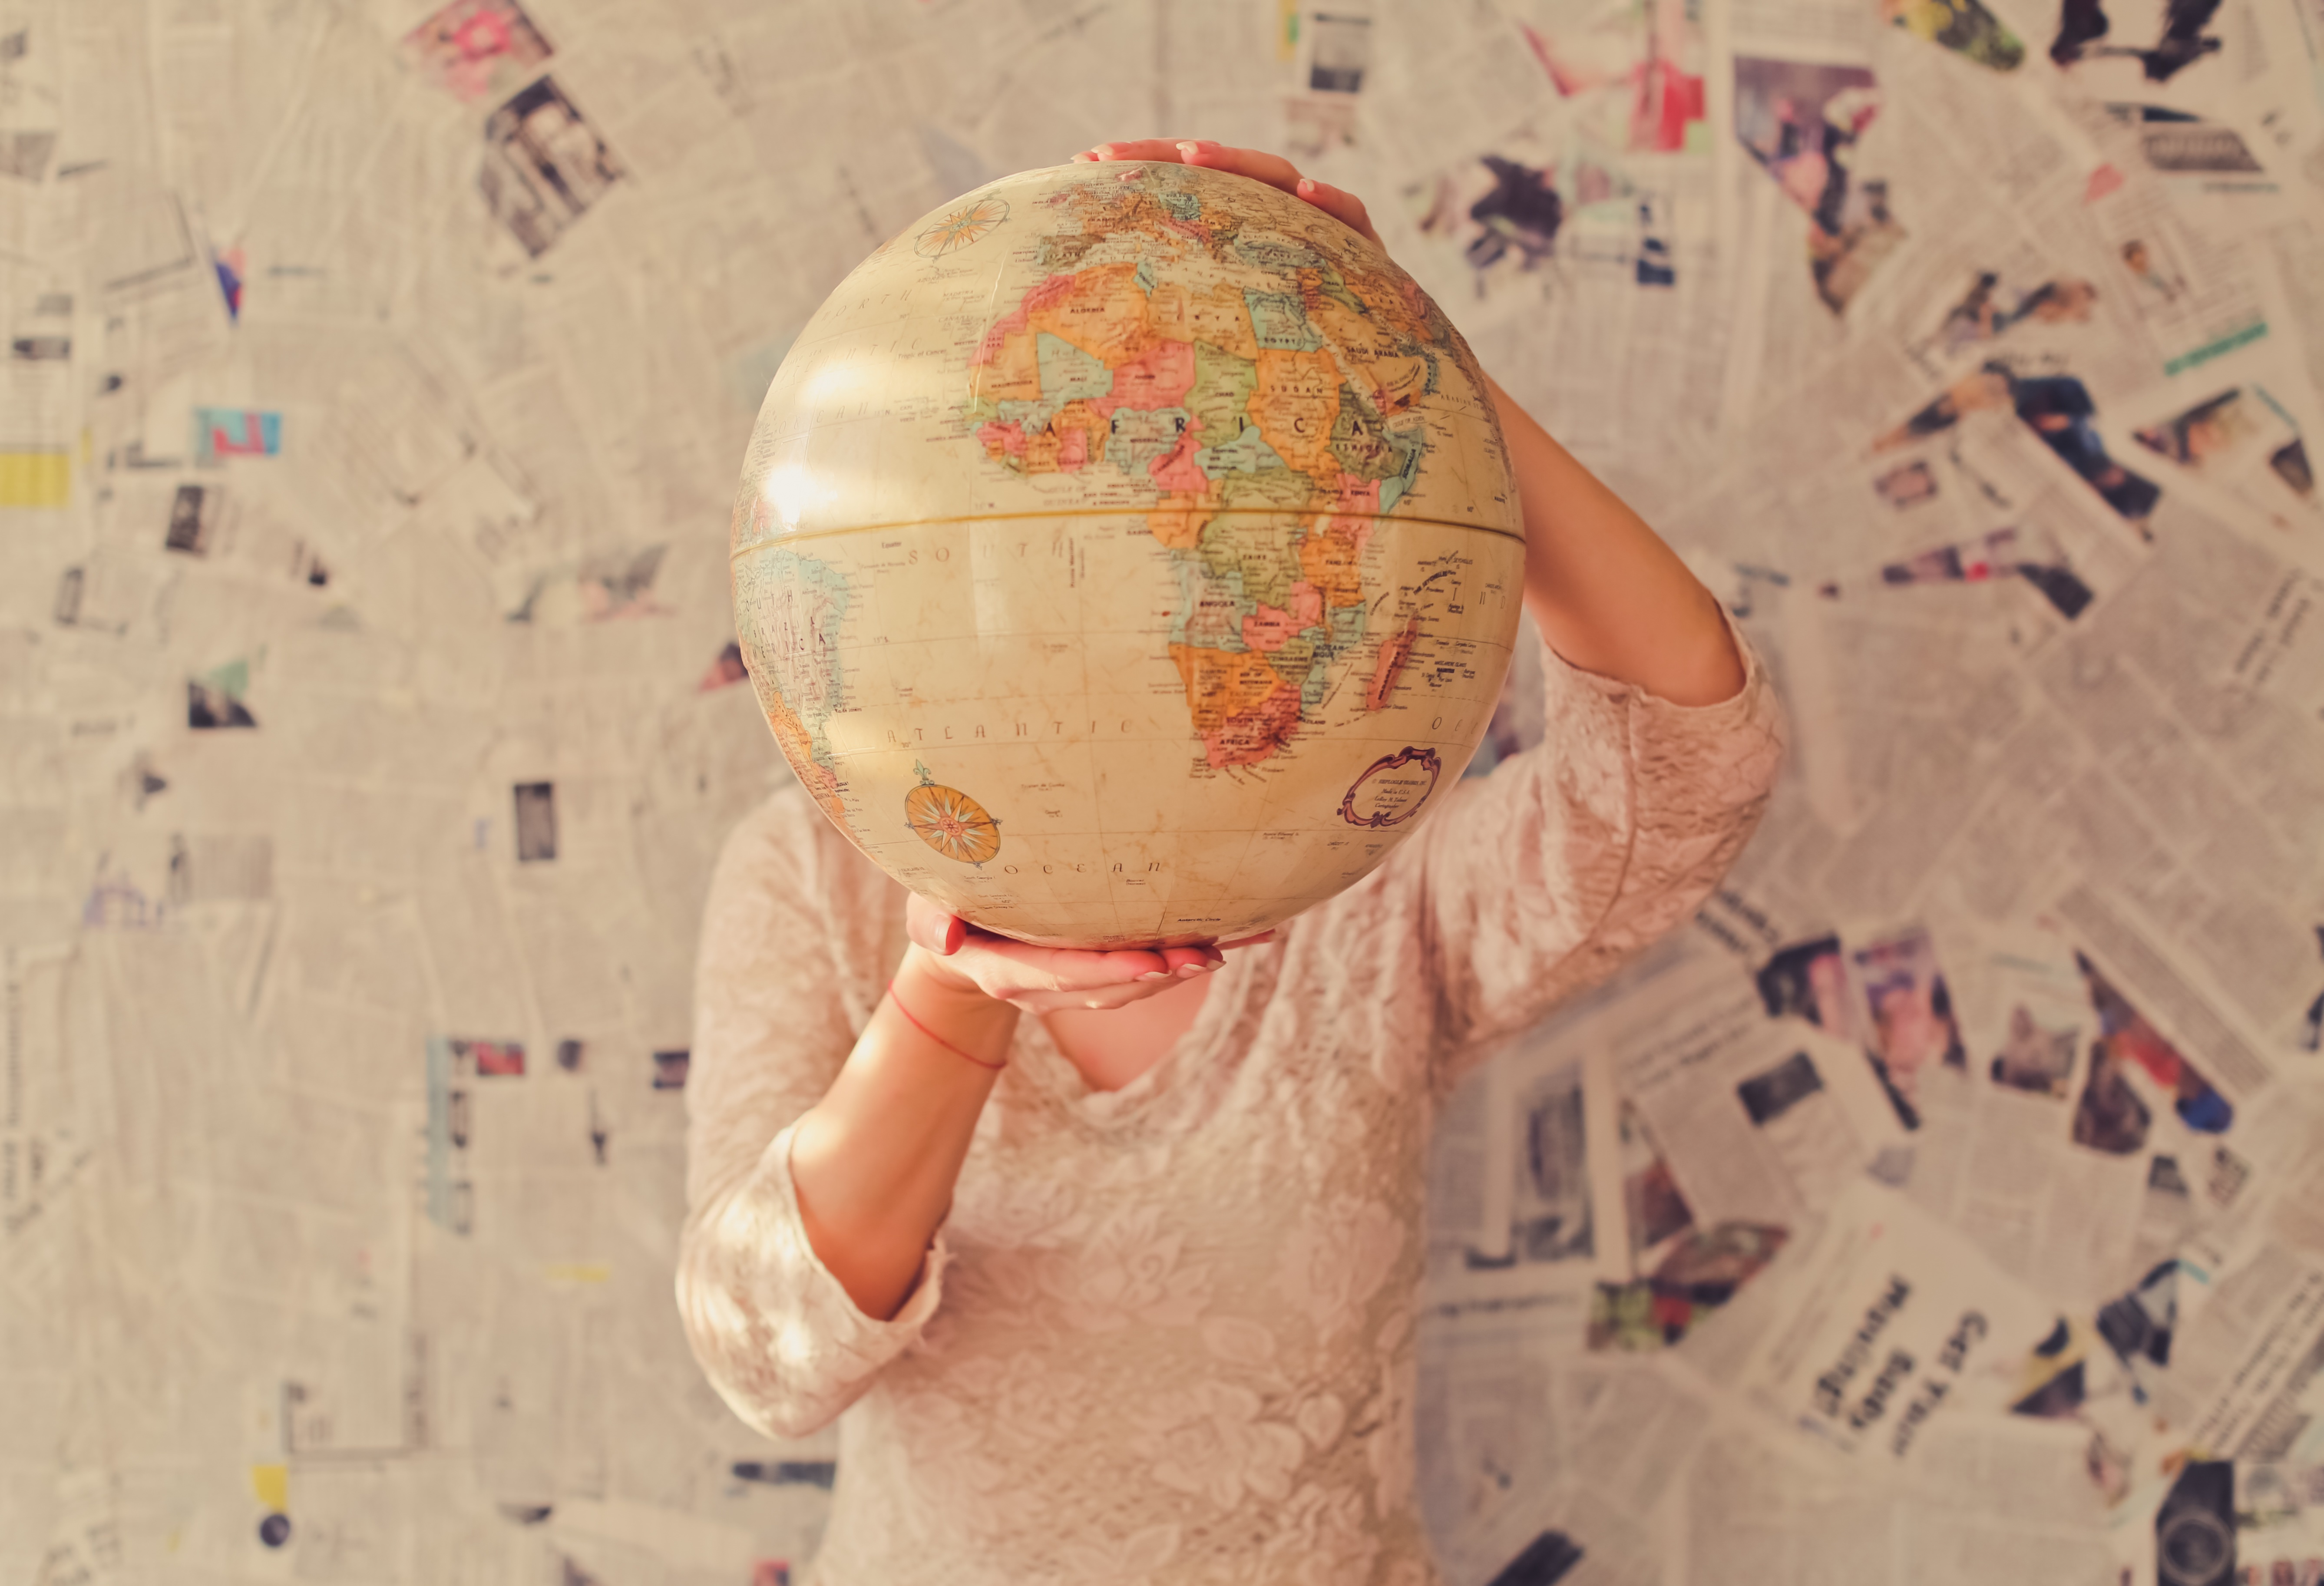 A woman holds a globe against a background of newspaper cuttings.